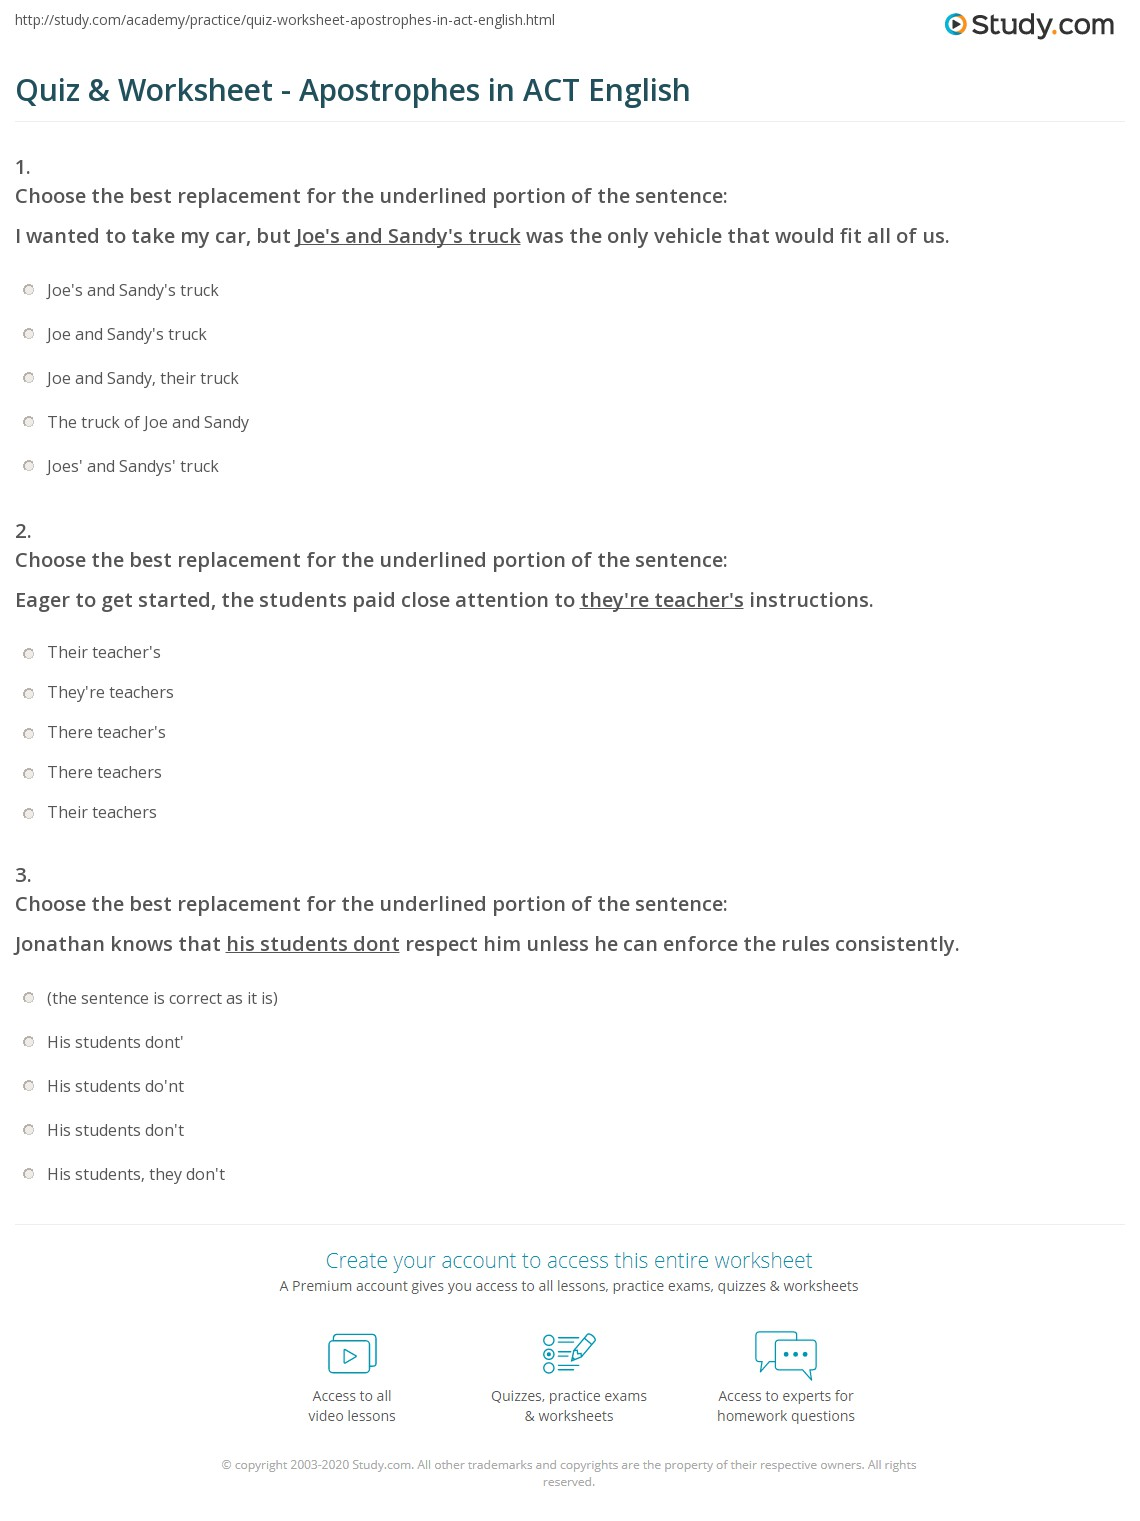 Print Act English Practice Apostrophes Worksheet